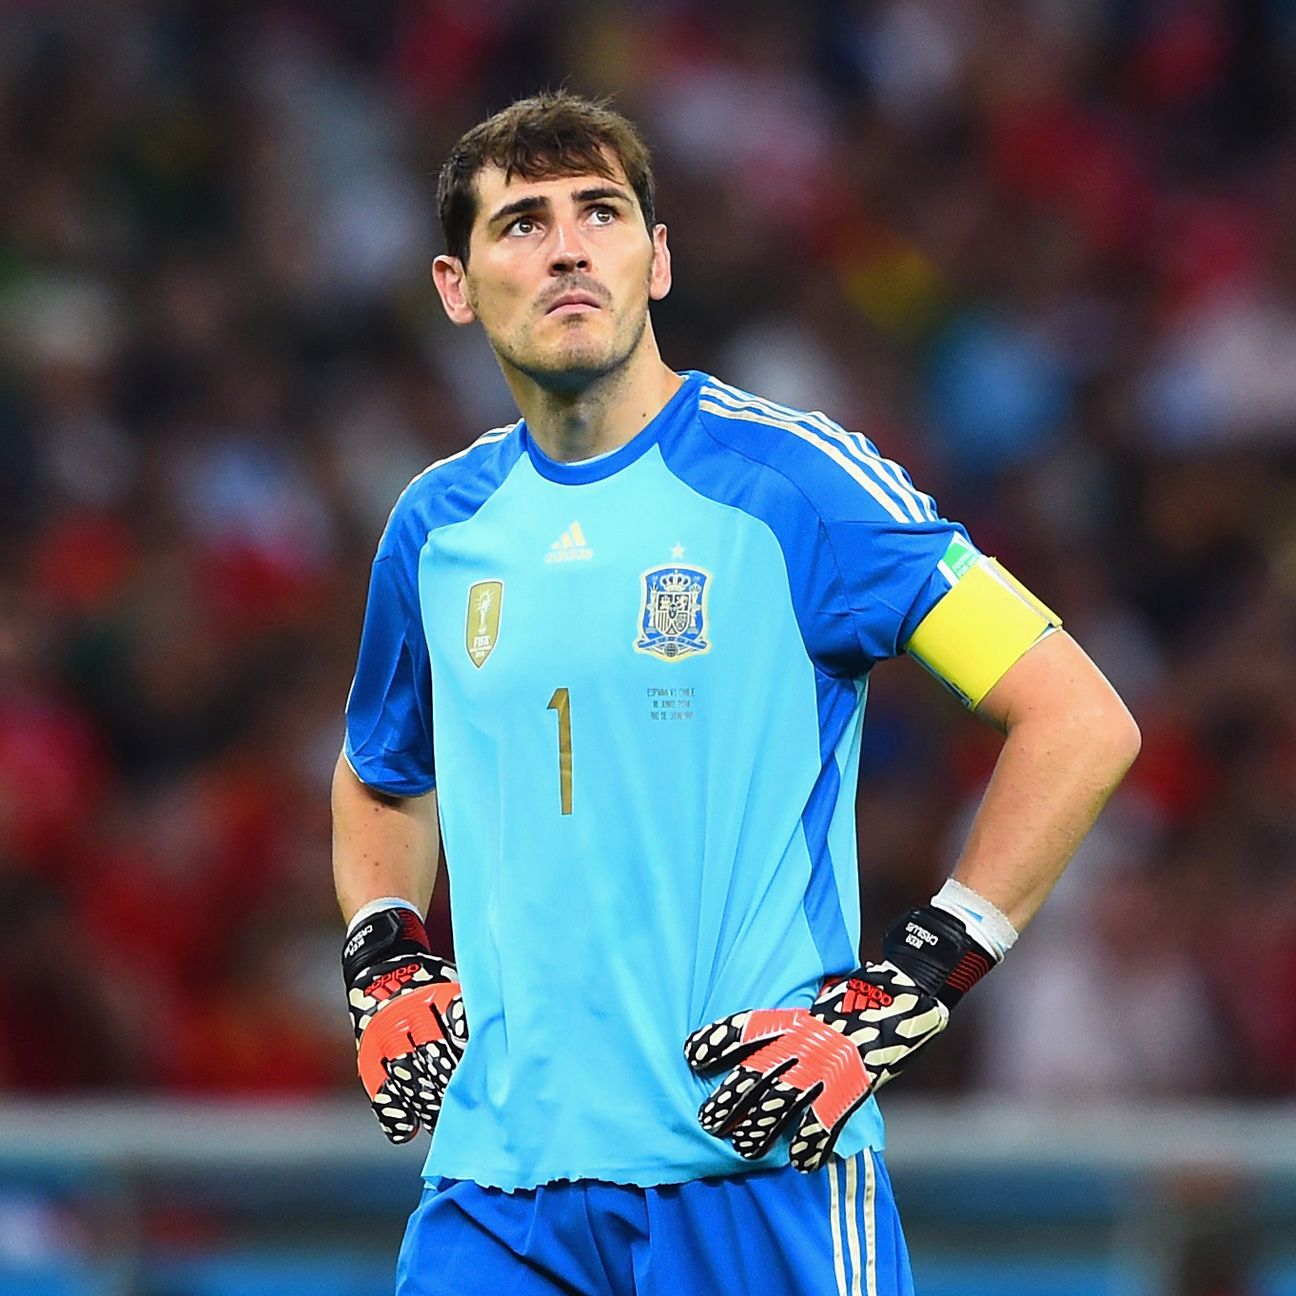 Of all the goalkeepers expected to excel in Brazil, Iker Casillas is the one whose disappointed most.